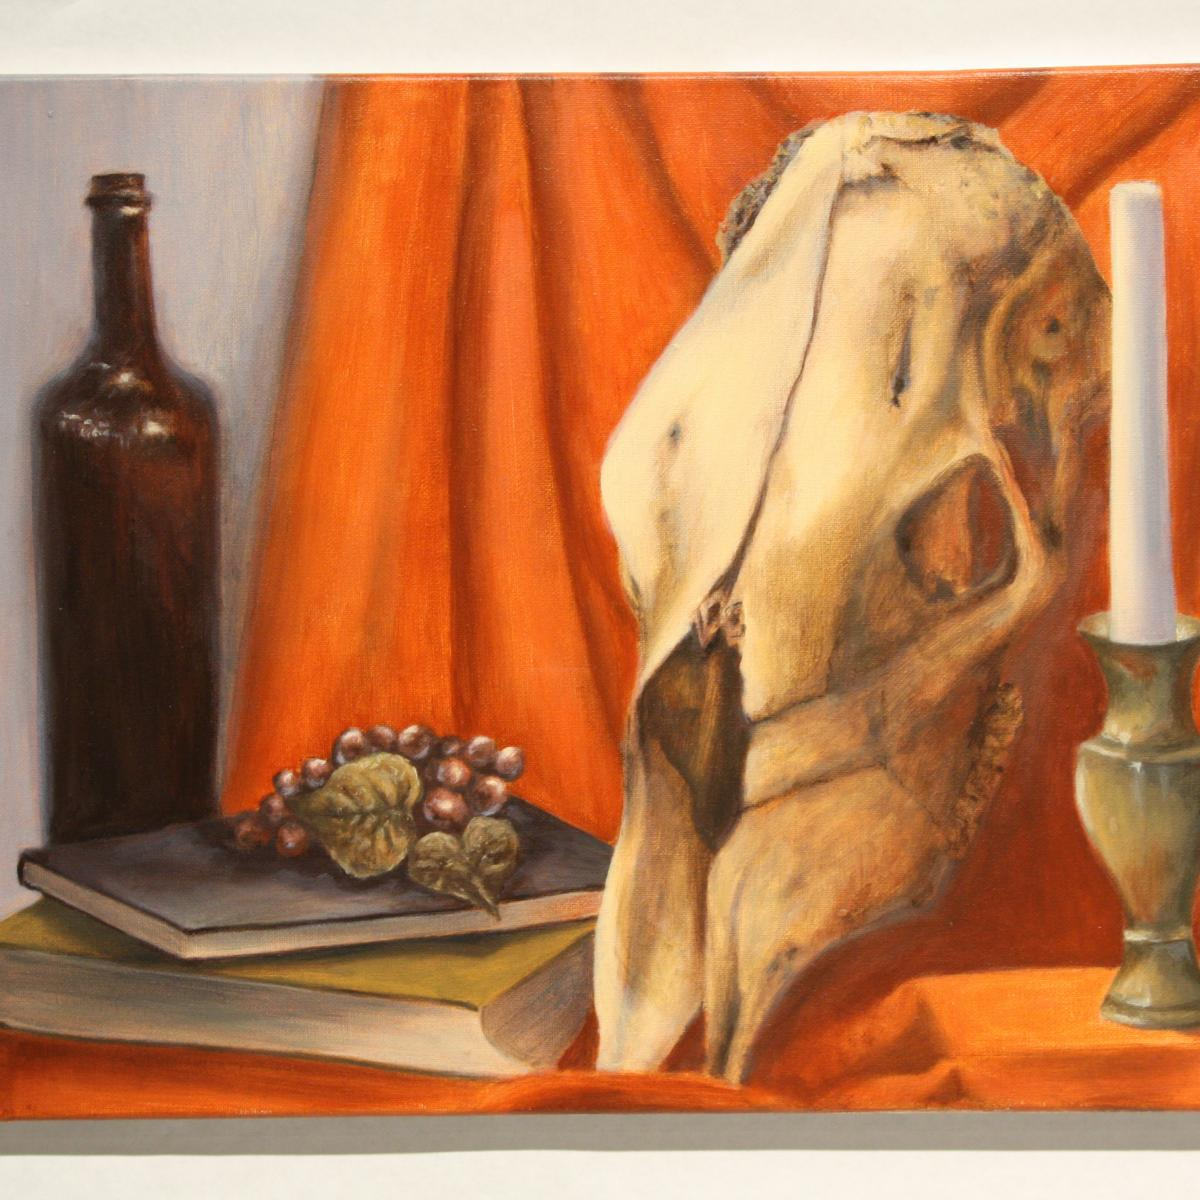 Painting of animal skull with orange drapery and candle and wine bottle.